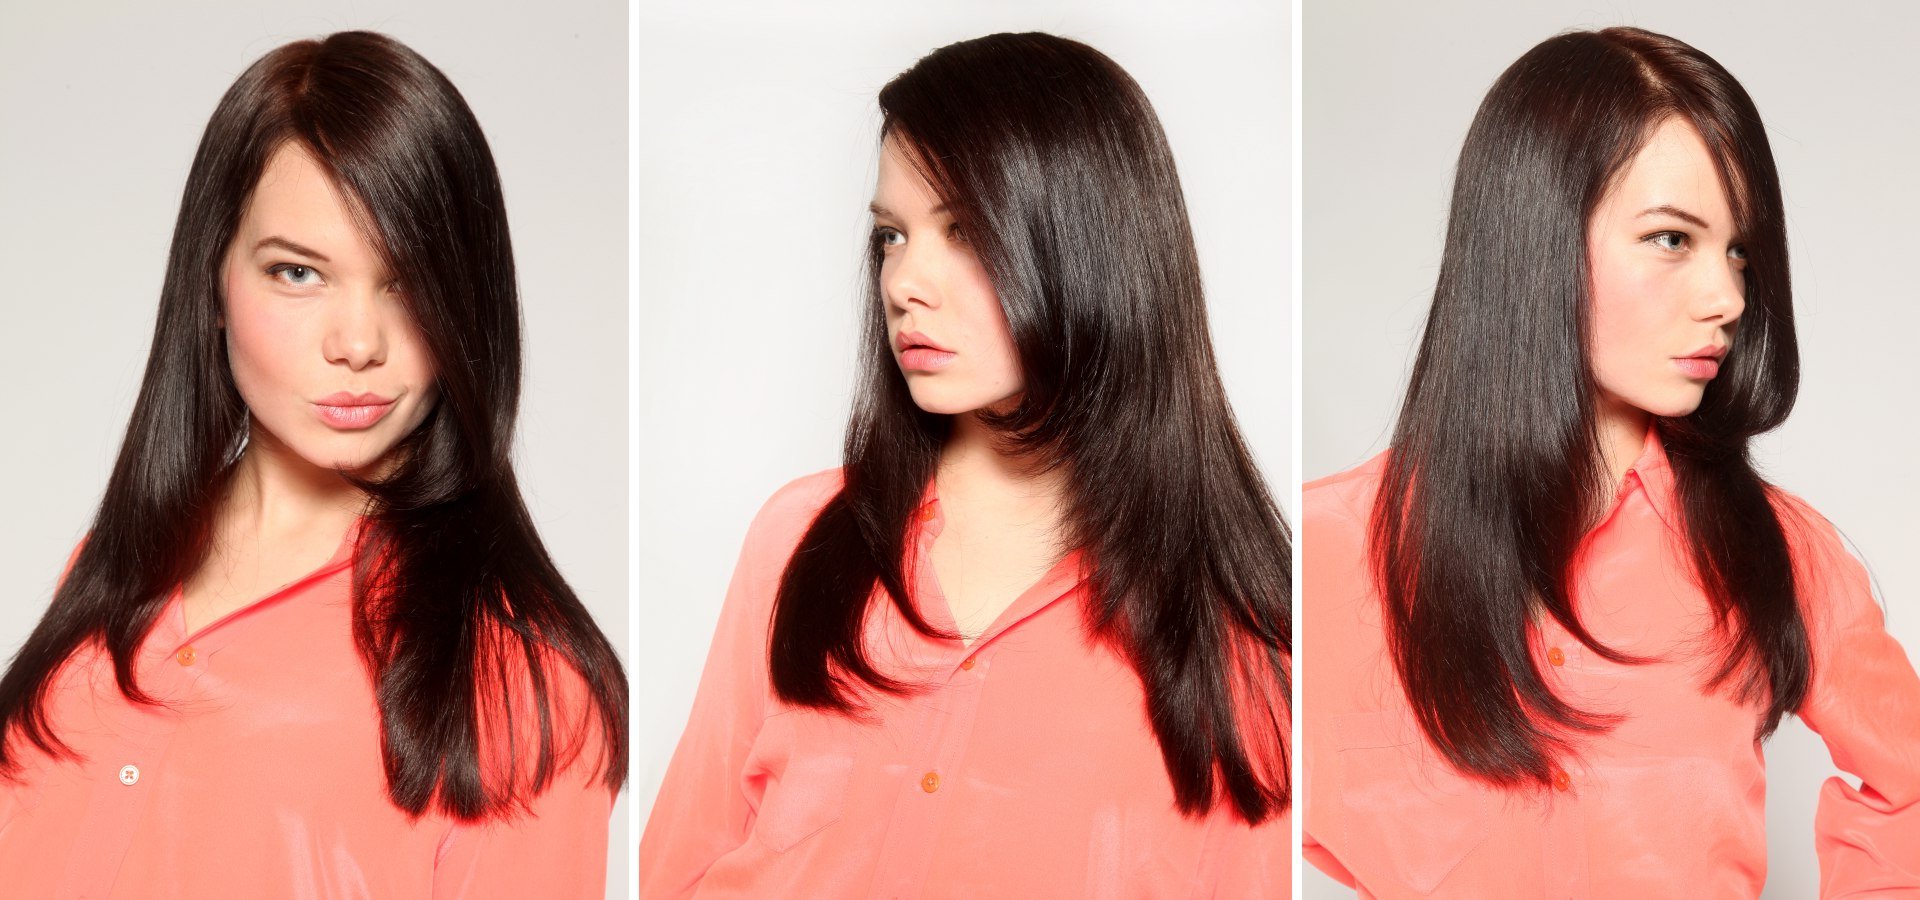 Fashionable Shiny Black Haircuts With Flicked Layers Within Easy Short Summer Hairstyles With Longer Top Hair For (View 12 of 20)